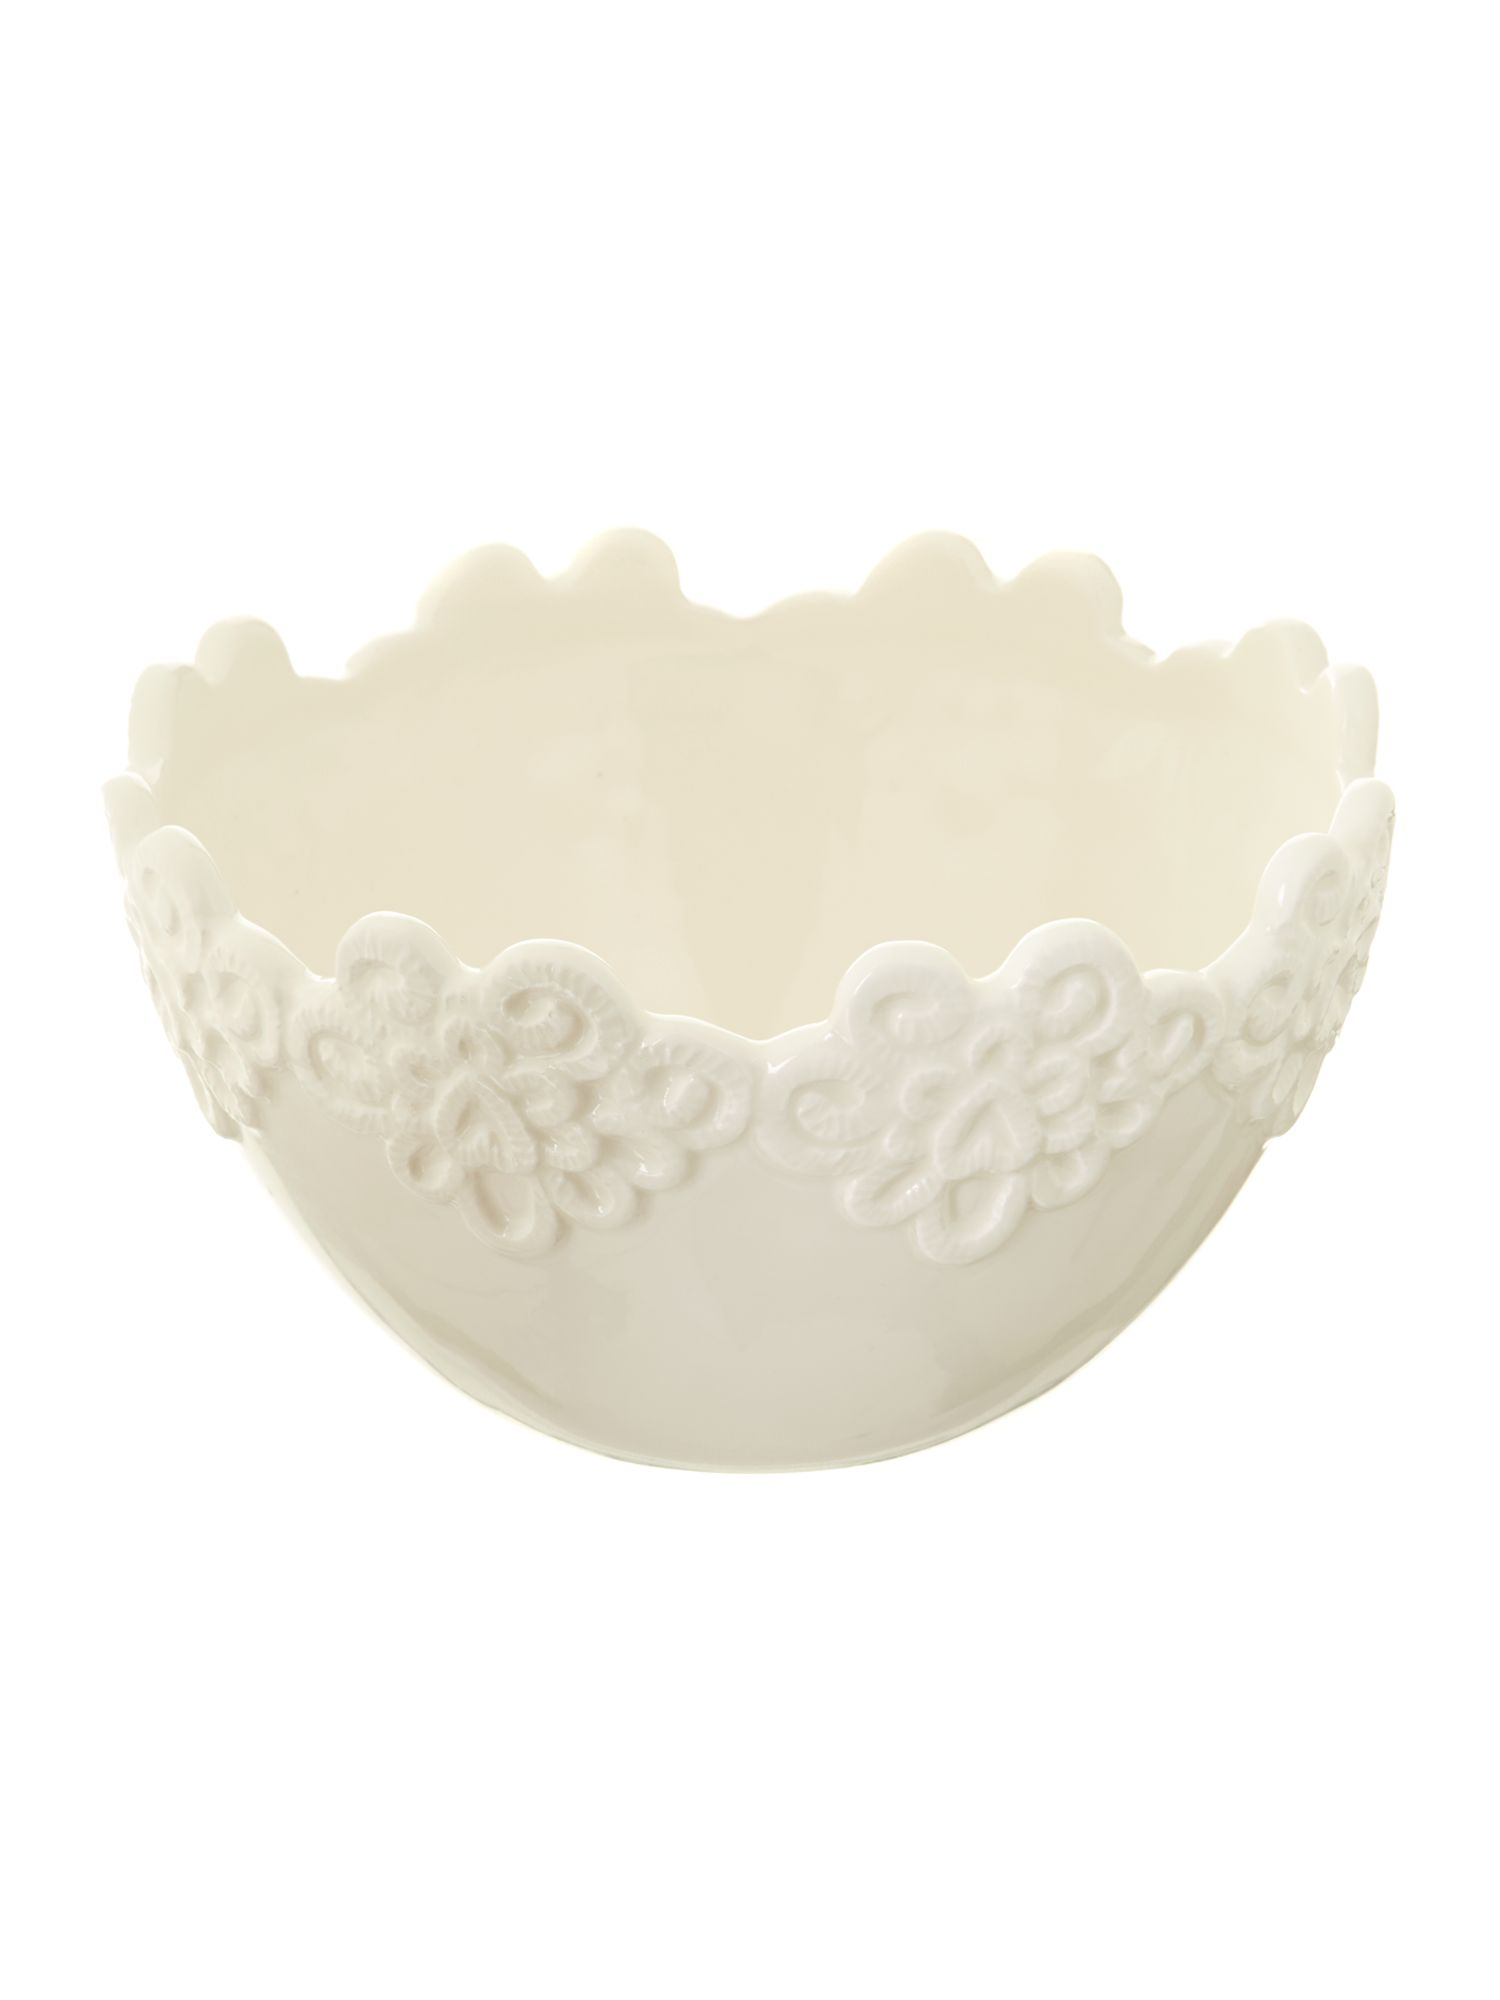 Shabby Chic Lace Fruit Bowl